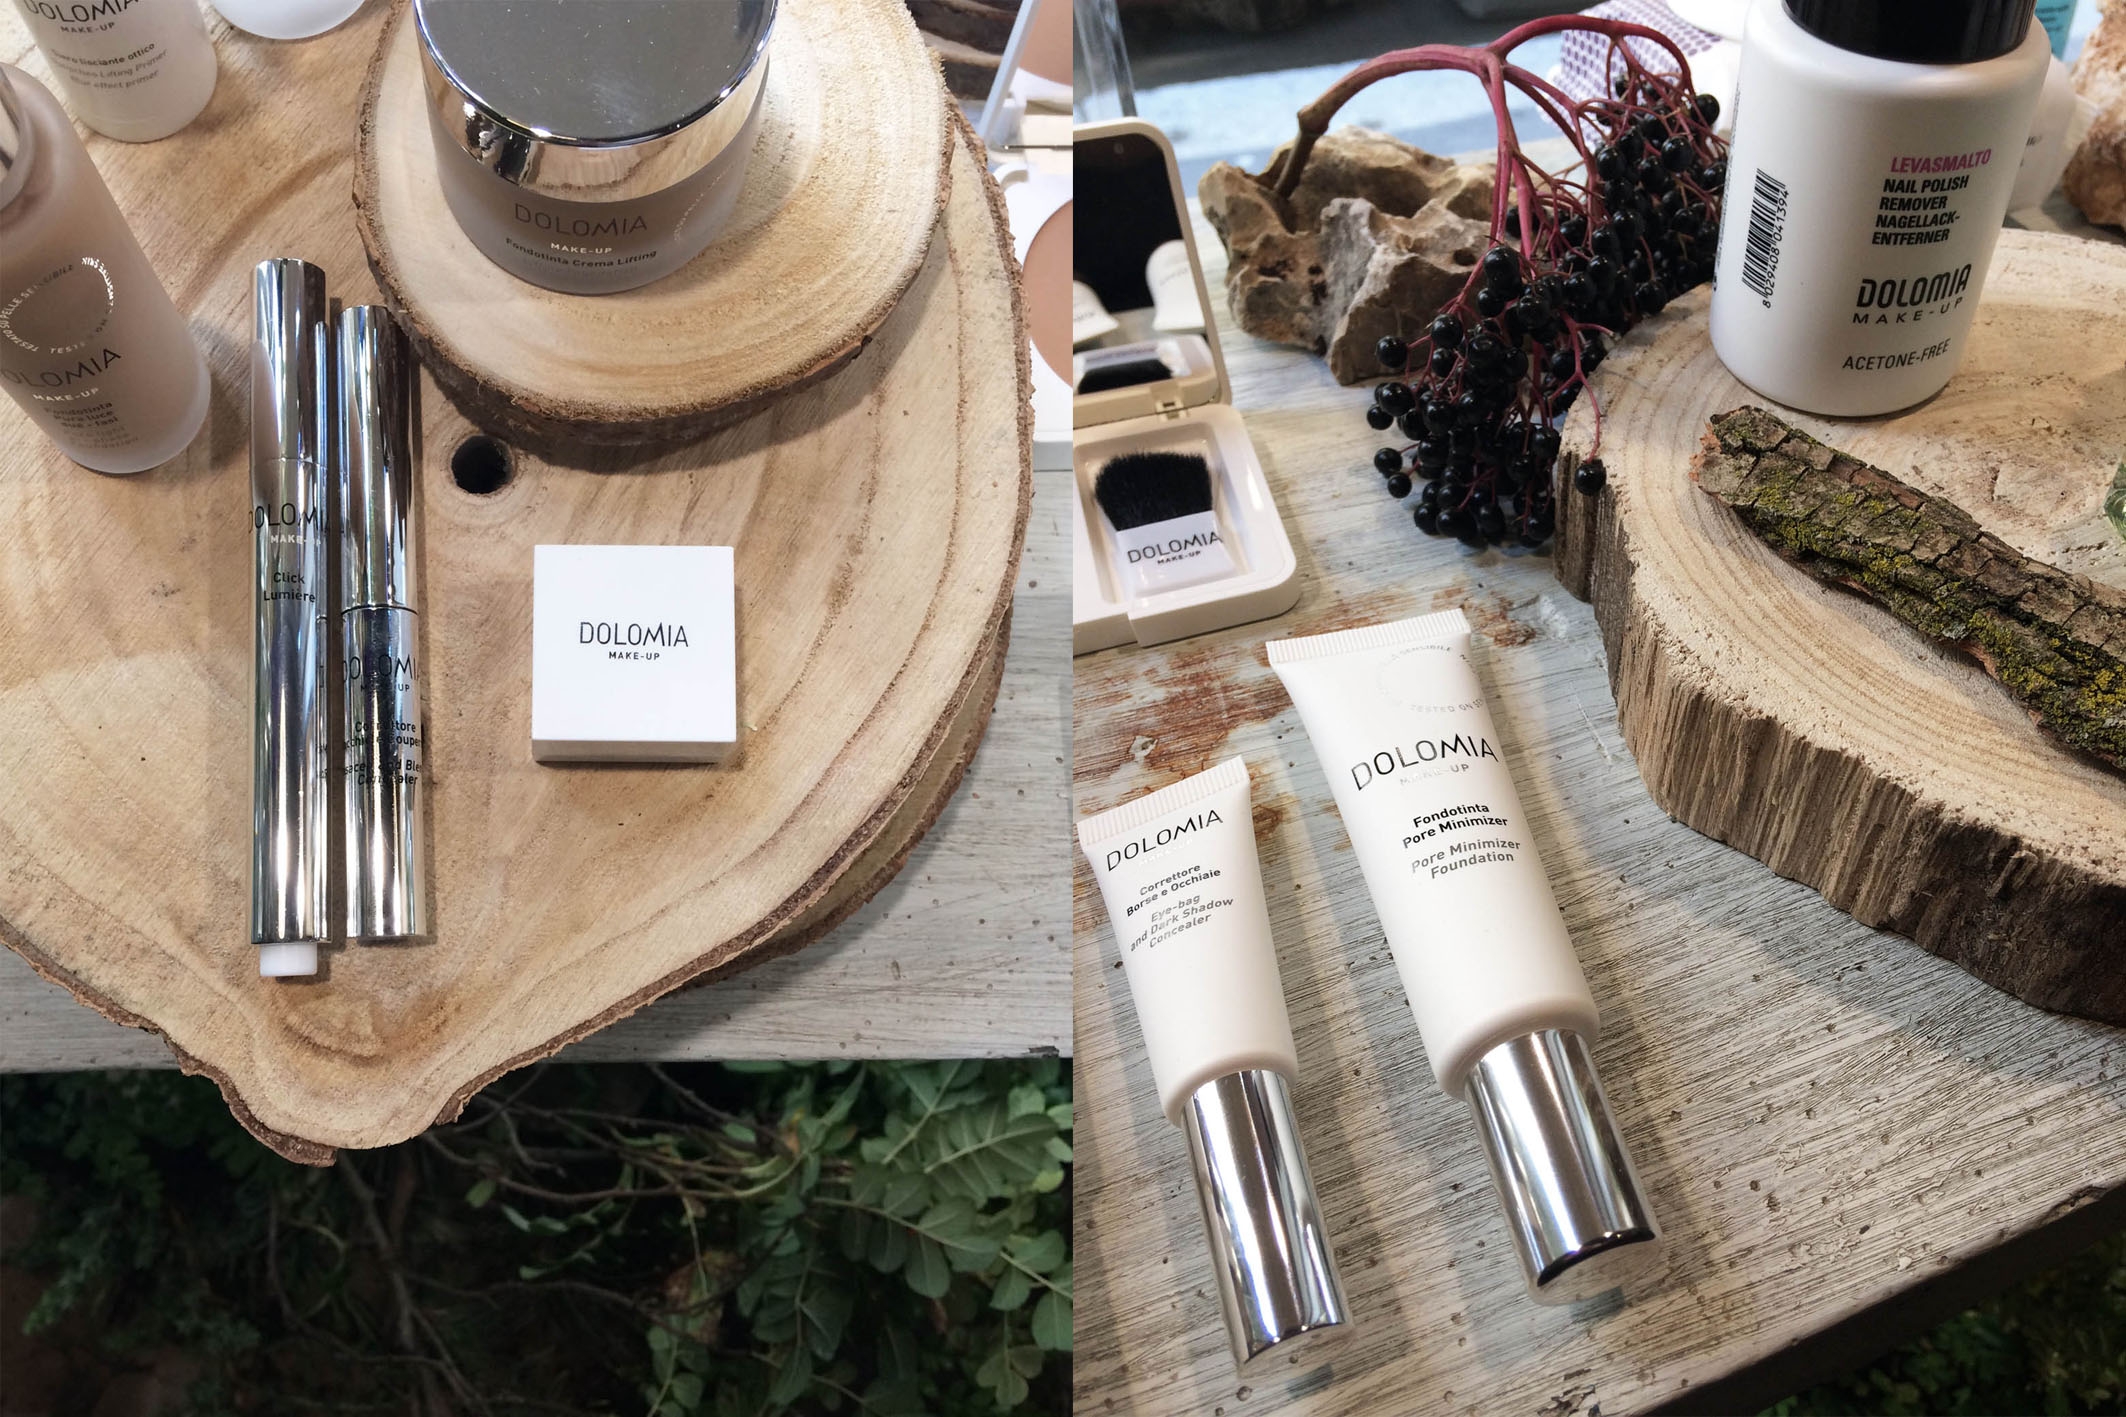 Dolomia Skincare new launch set styling project @ Fioraio Bianchi 09